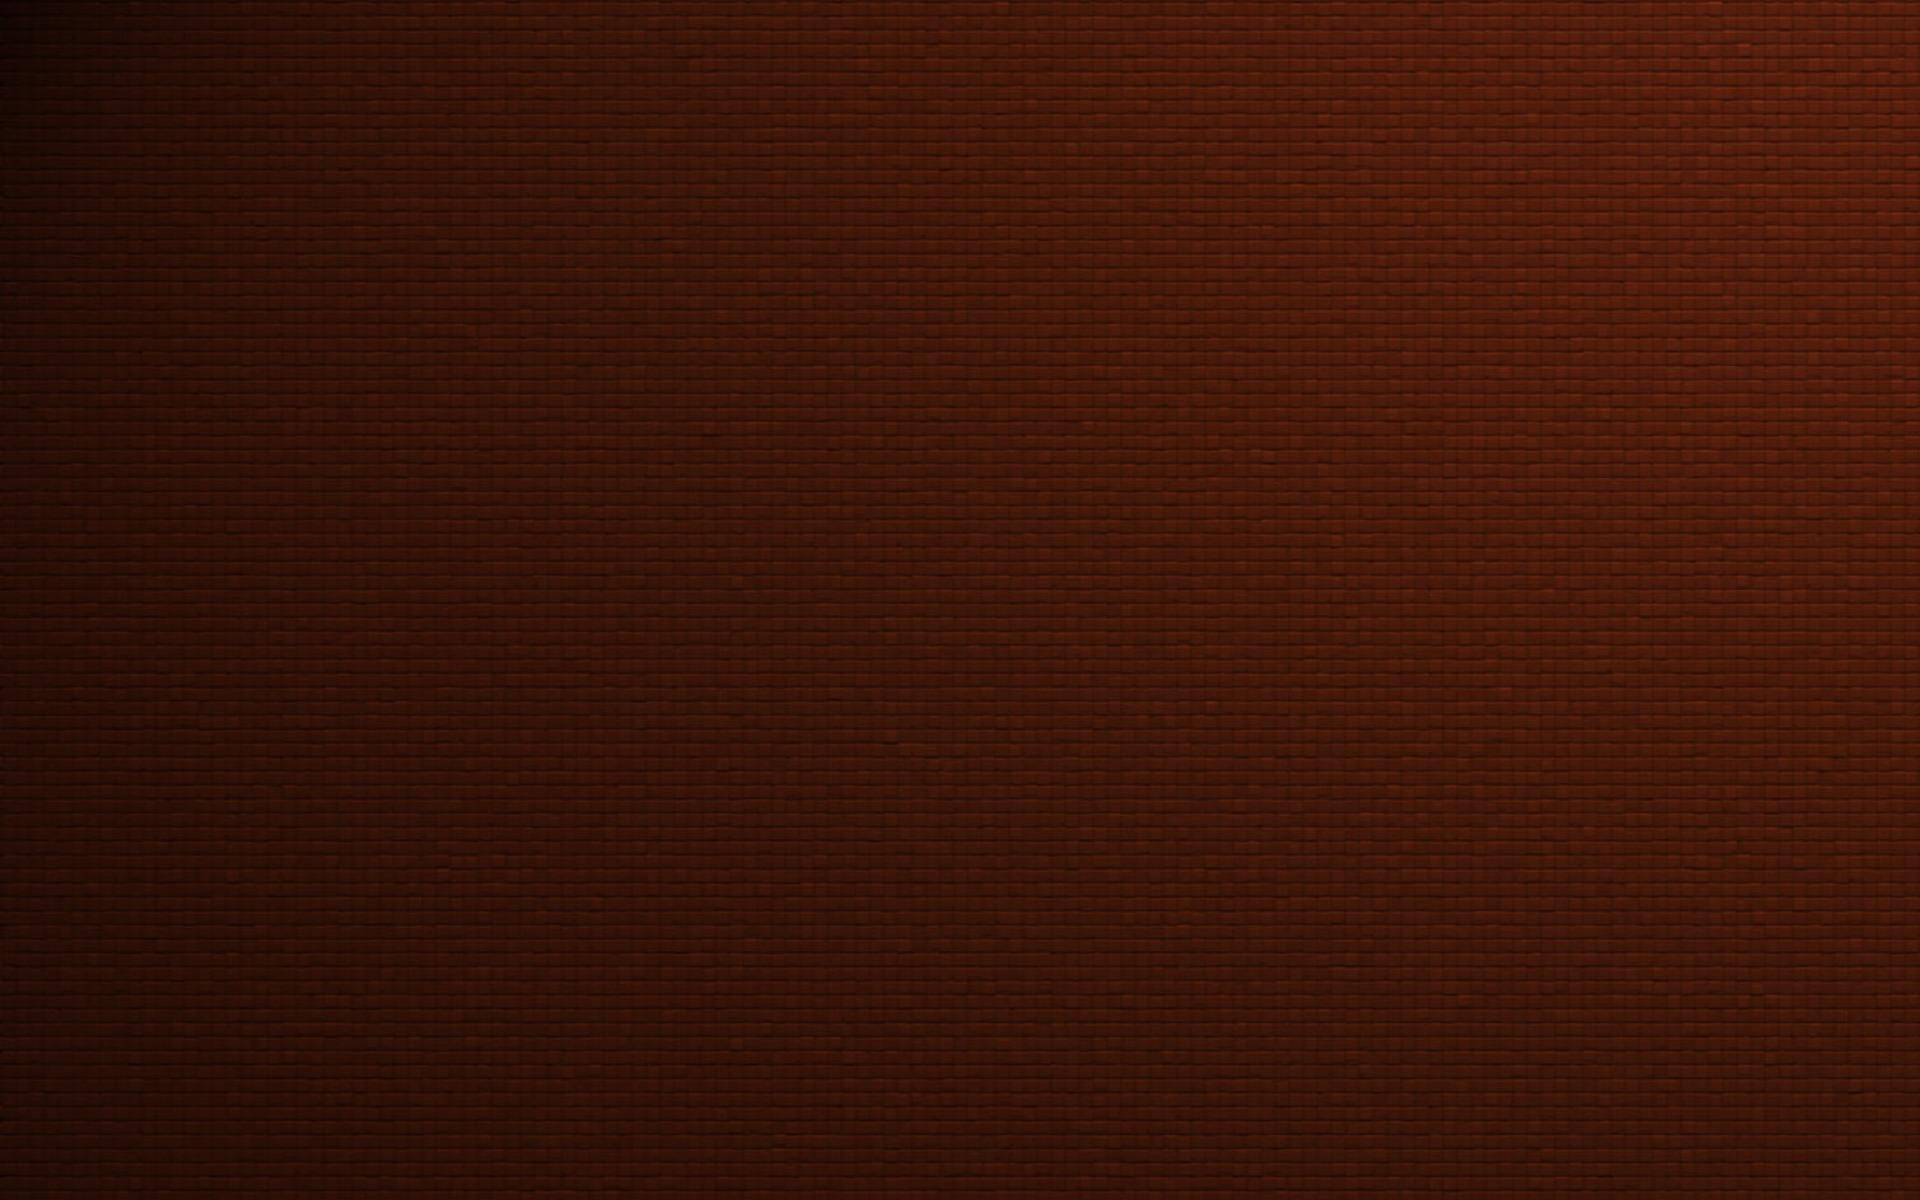 19201200 brown windows wallpaper an abstract brown pc wallpaper made 1920x1200